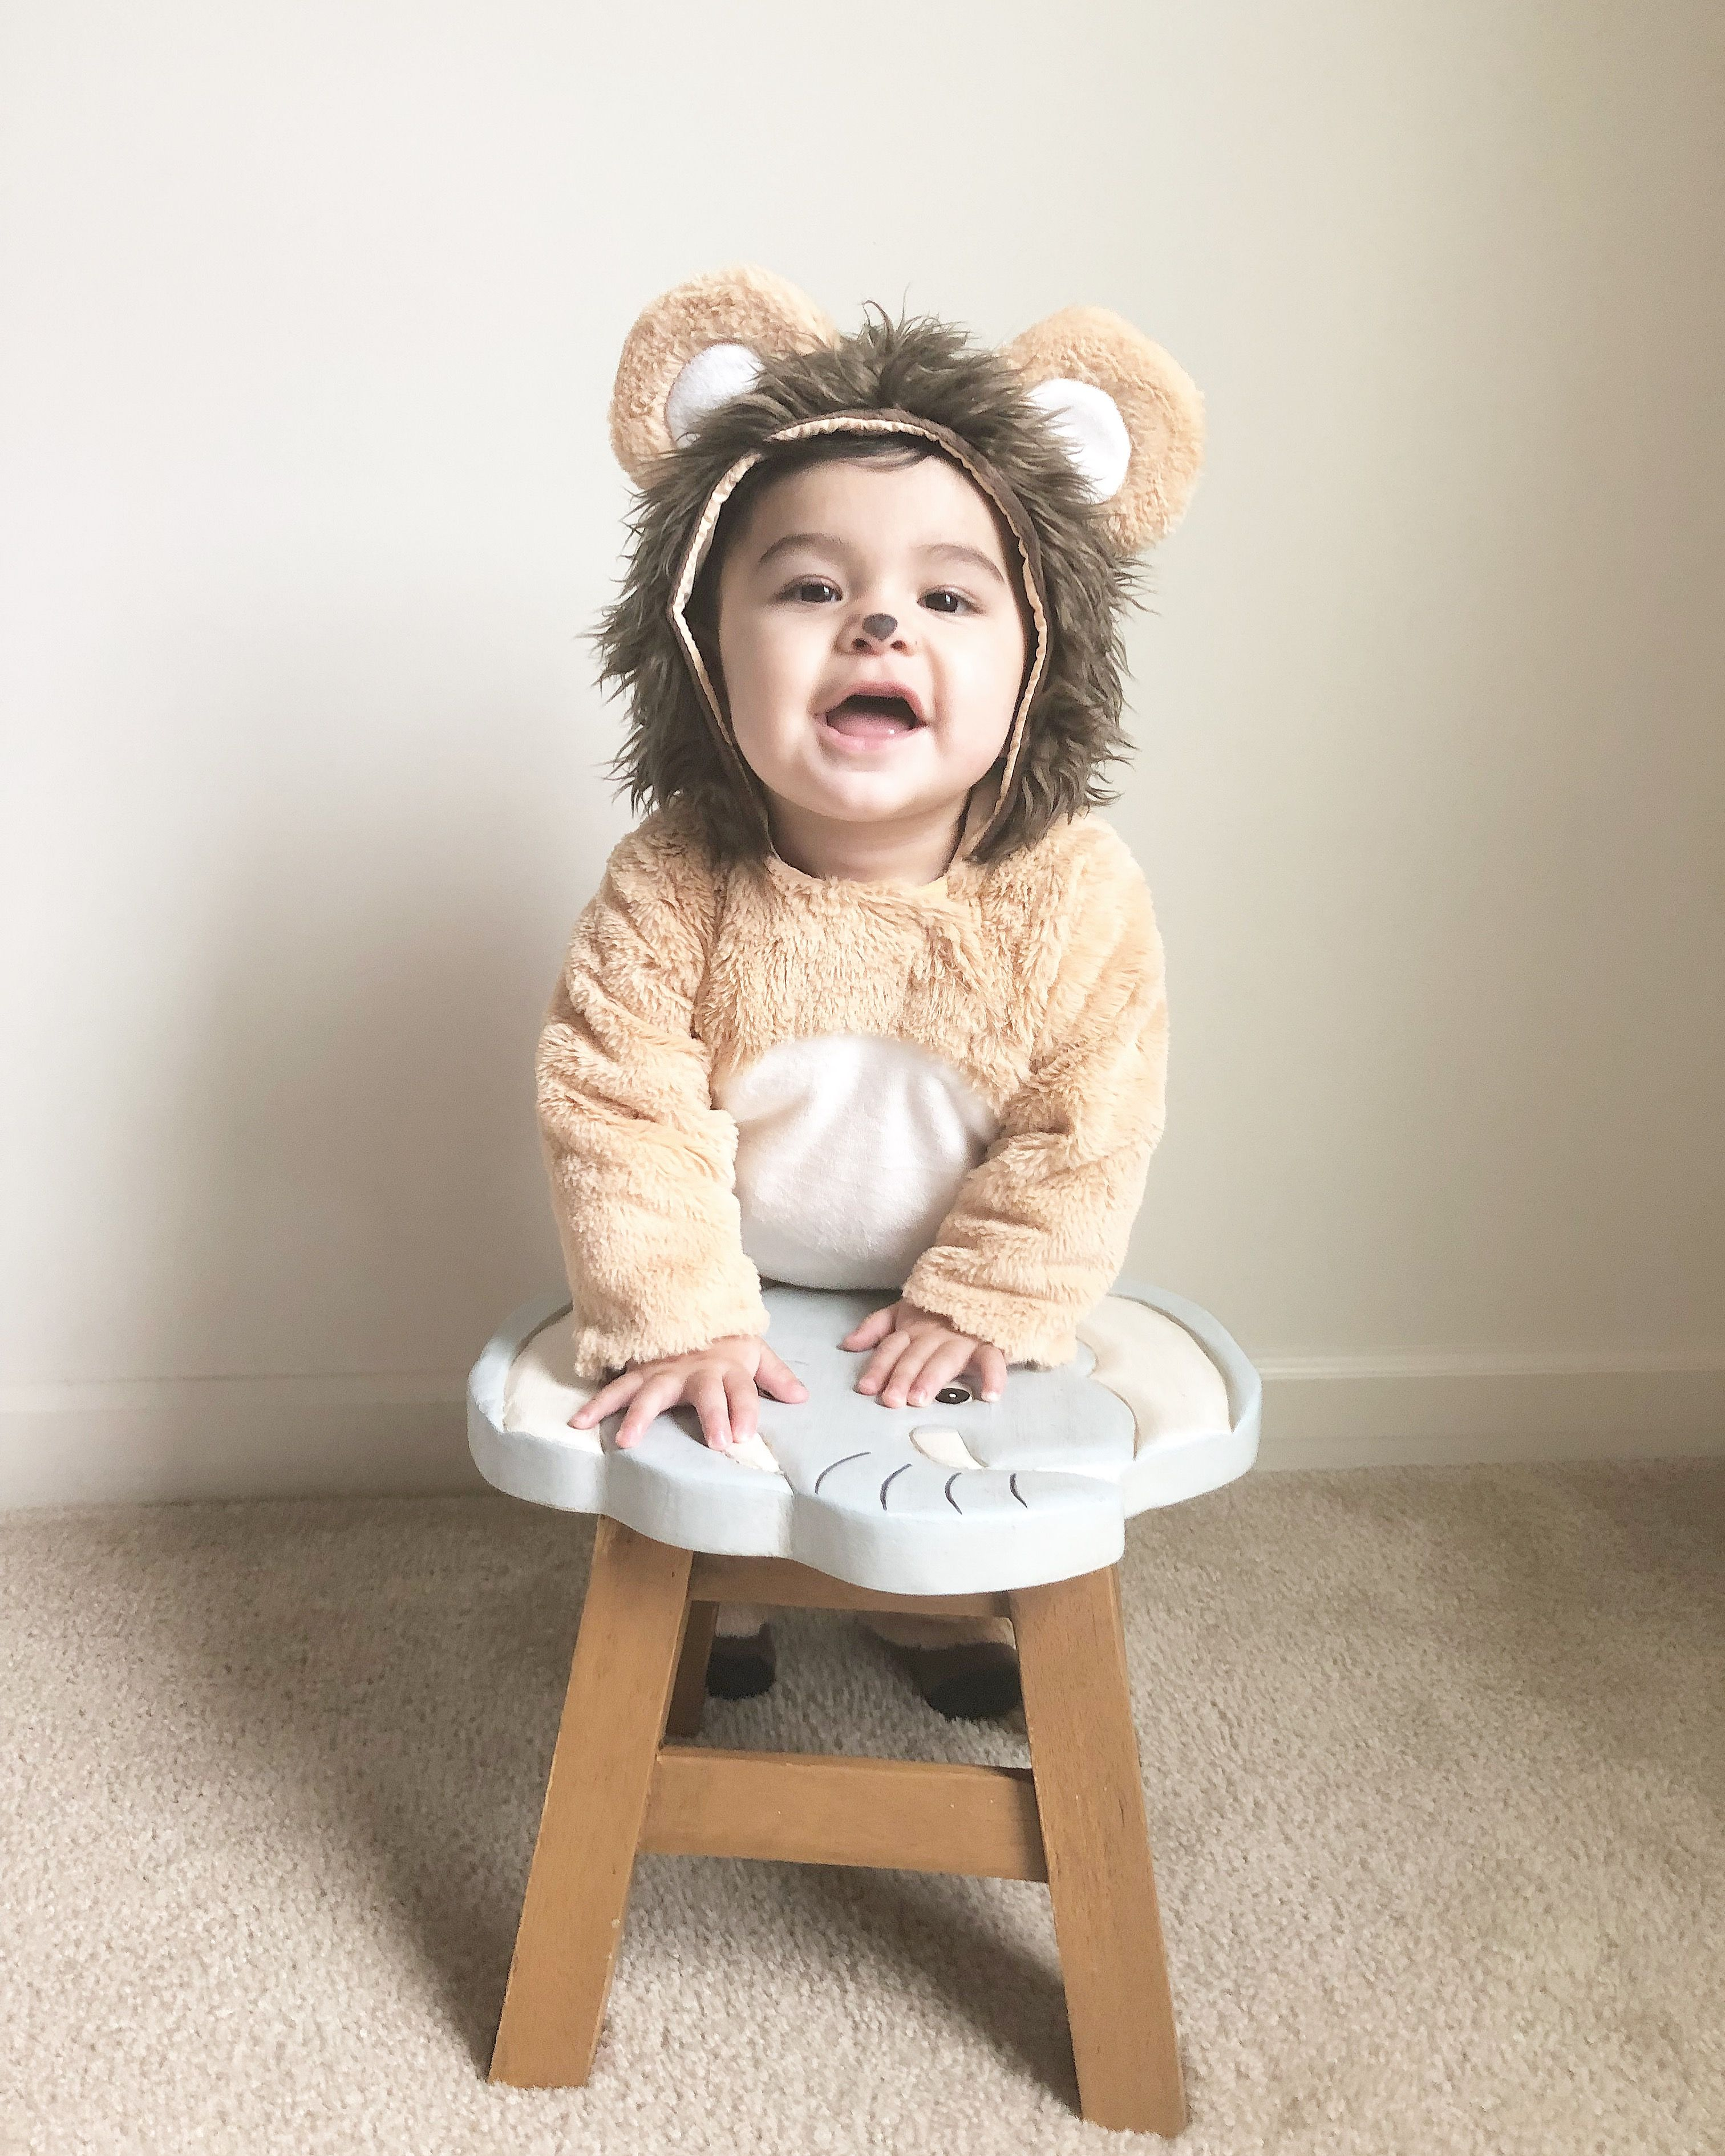 Baby lion costume/ potterybarn kids costume/baby's first